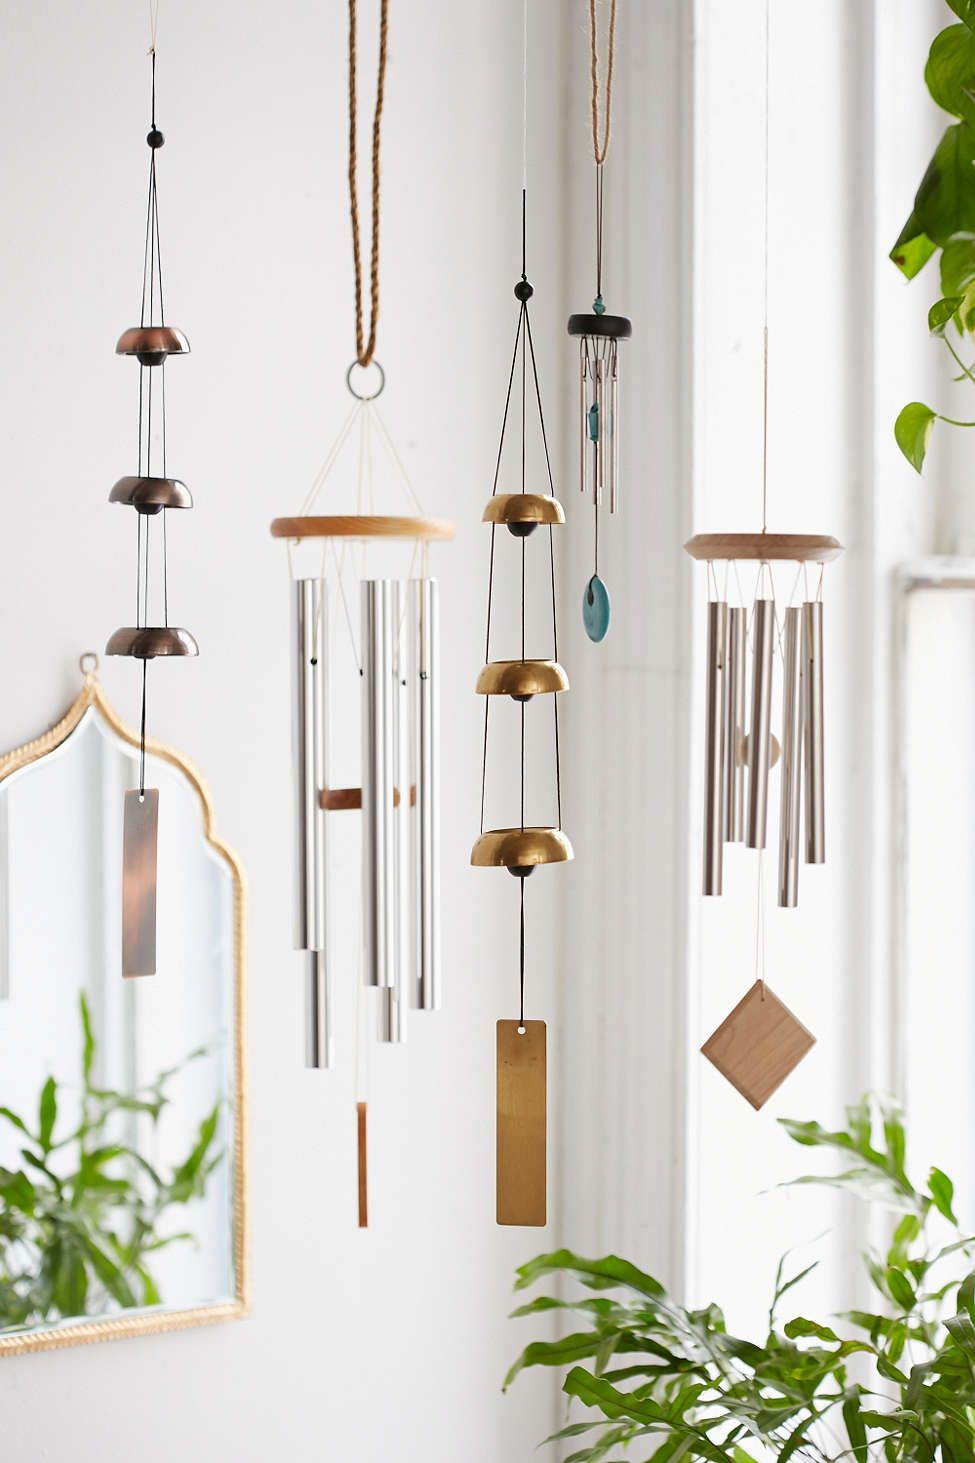 Woodstock Chimes Temple Bells Chime | M A C R A M E | Temple bells